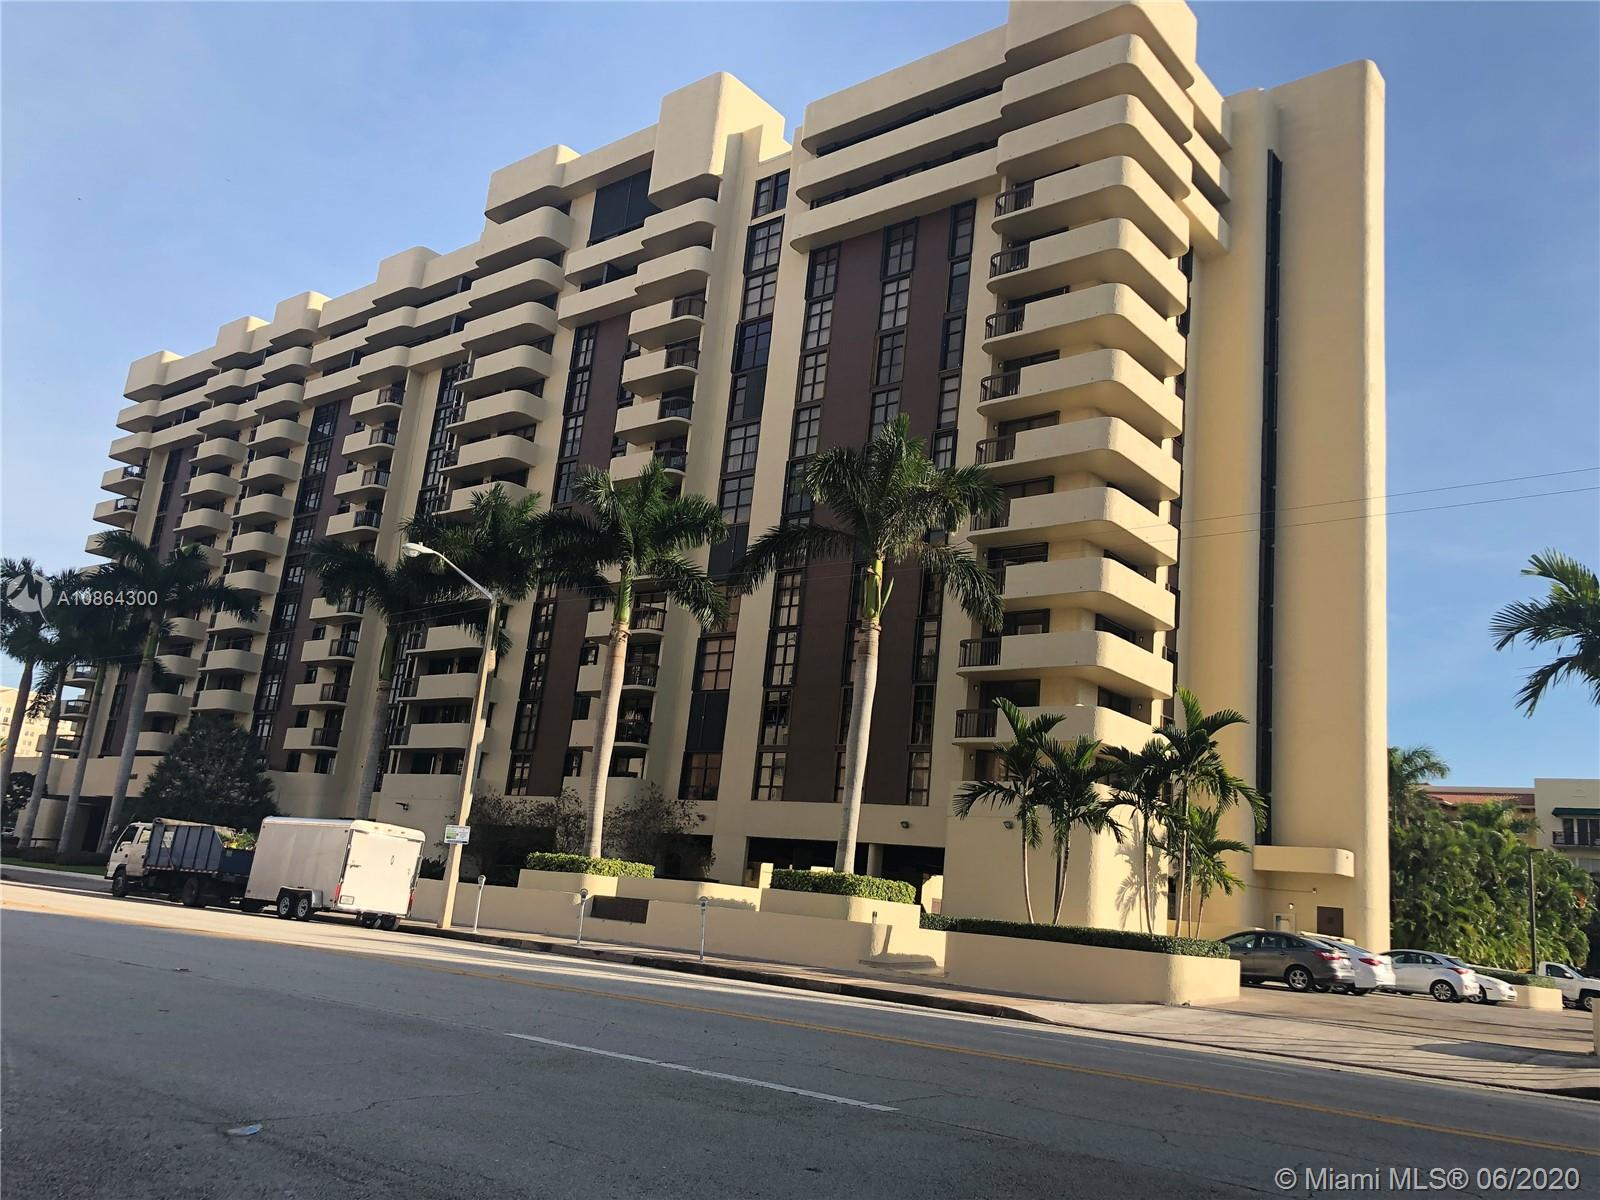 Remodeled spacious apartment, one big master bedroom with full bathroom, walking closet. 1/2 bathroom, second bedroom was transformed into an open concept office. Open kitchen, wood floors and 2 balconies This unit's entrance is located in an atrium, enjoy impressive south Coral Gables view.